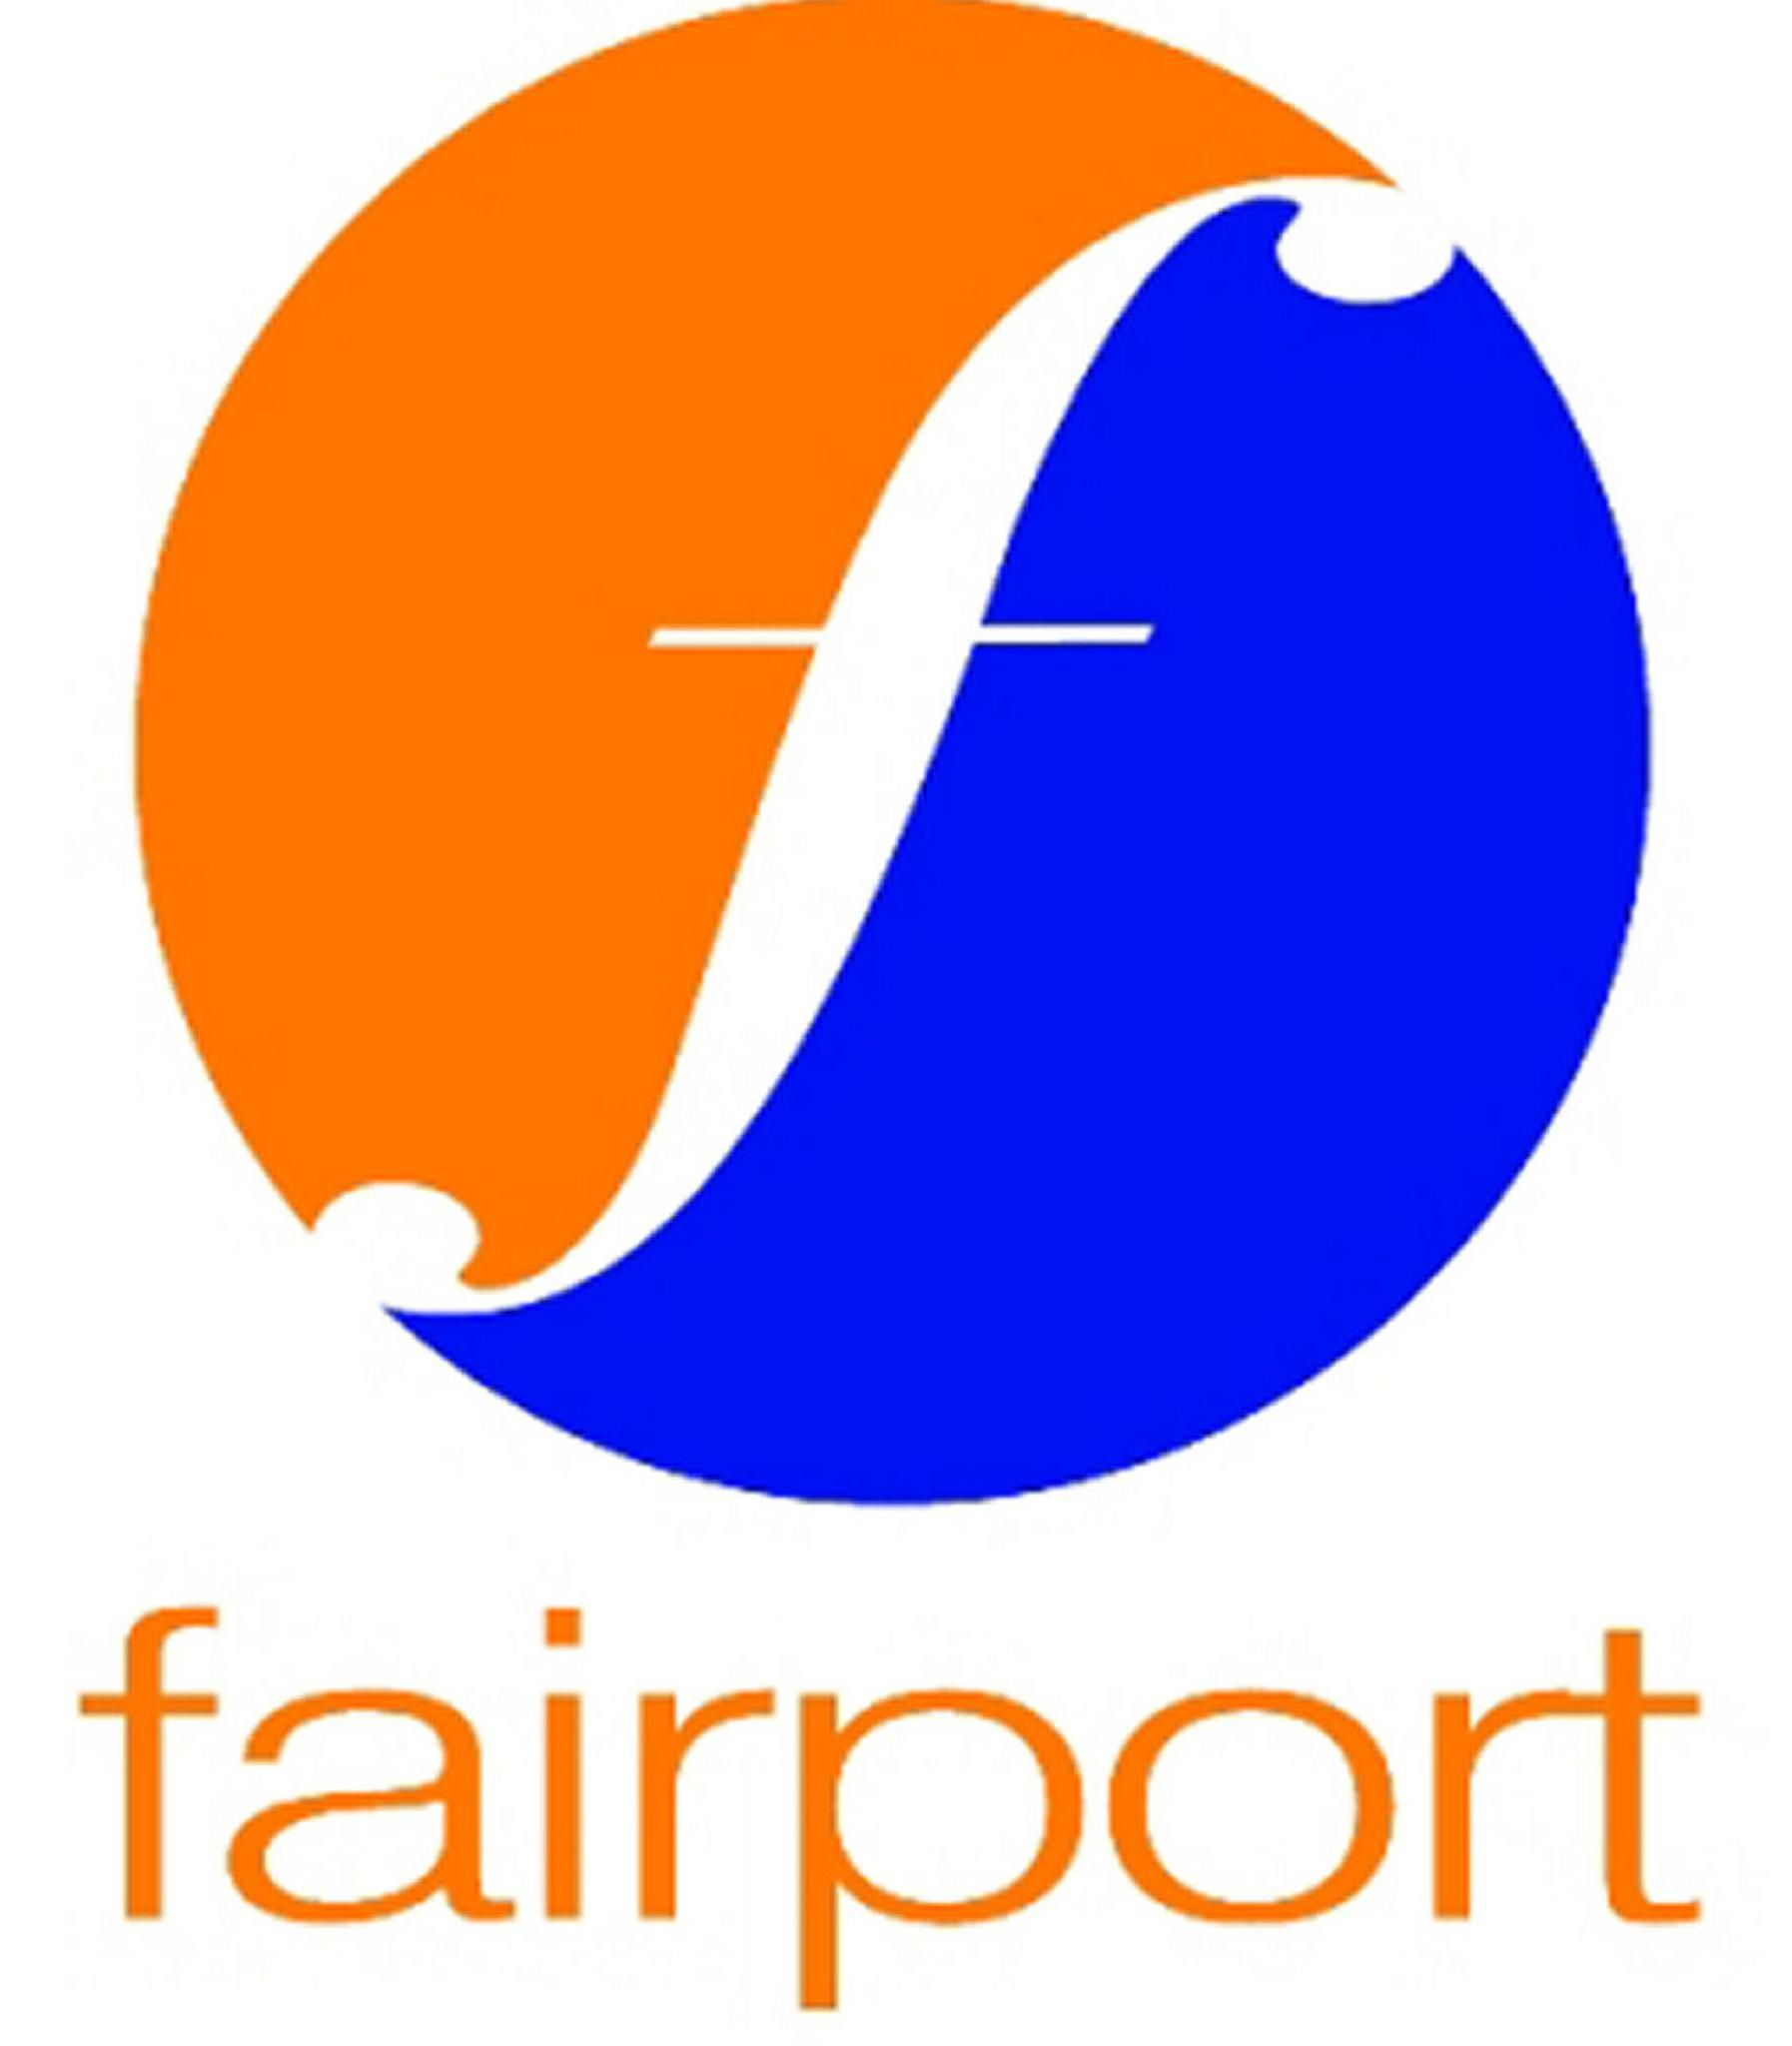 Fairport Engineering Ltd